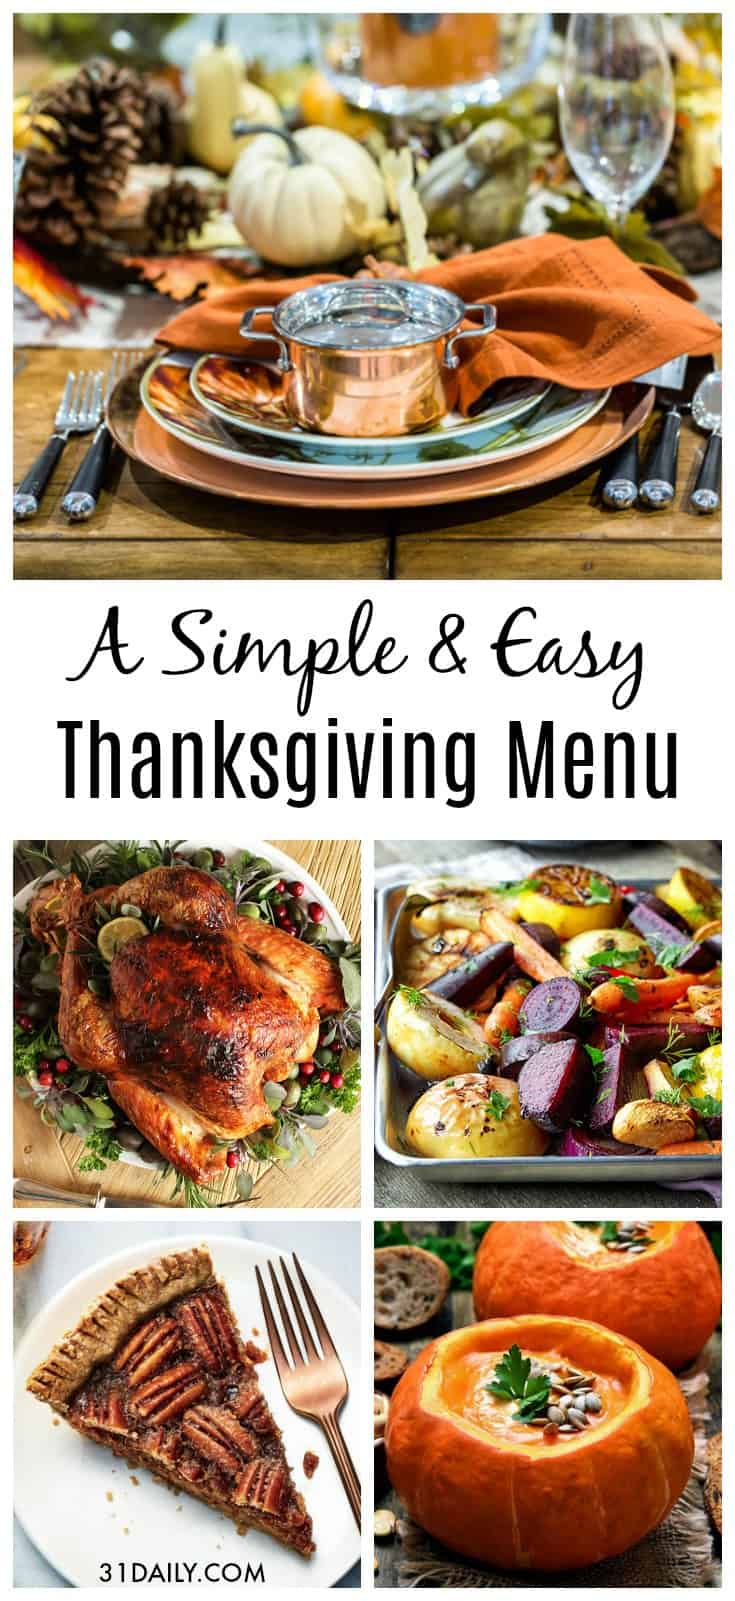 An Easy Thanksgiving Menu | 31Daily.com